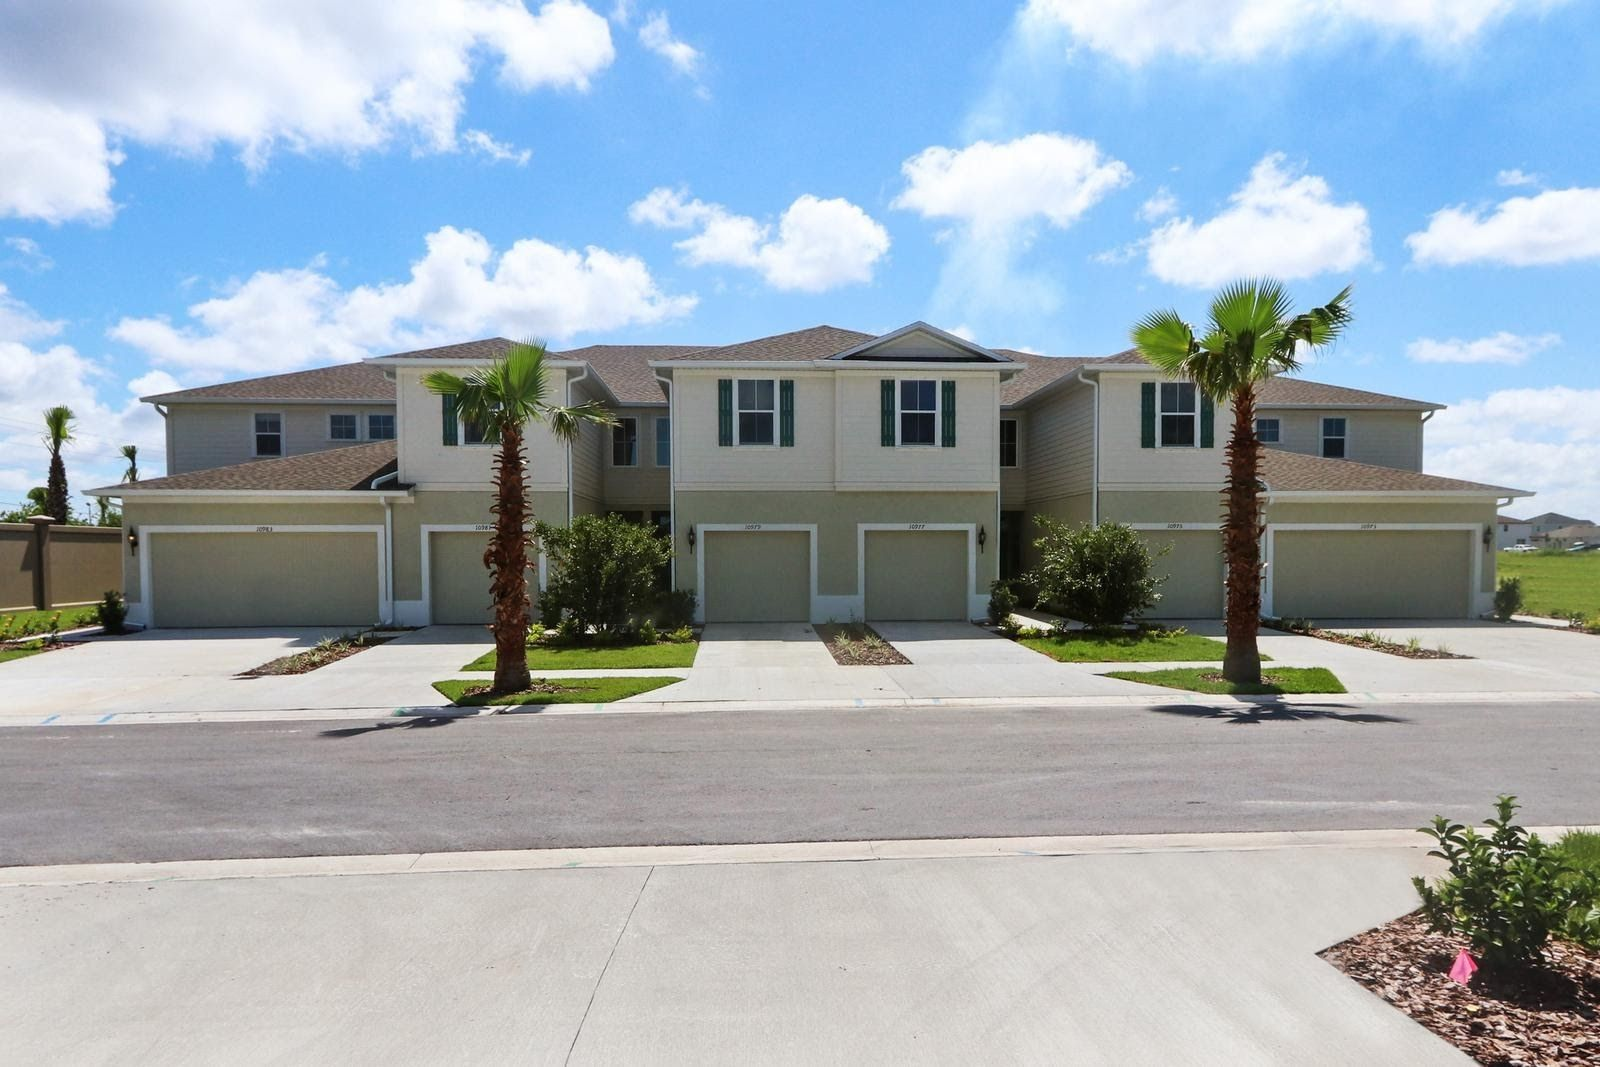 Photo of Townhomes at Lucaya Lake Club in Riverview, FL 33579